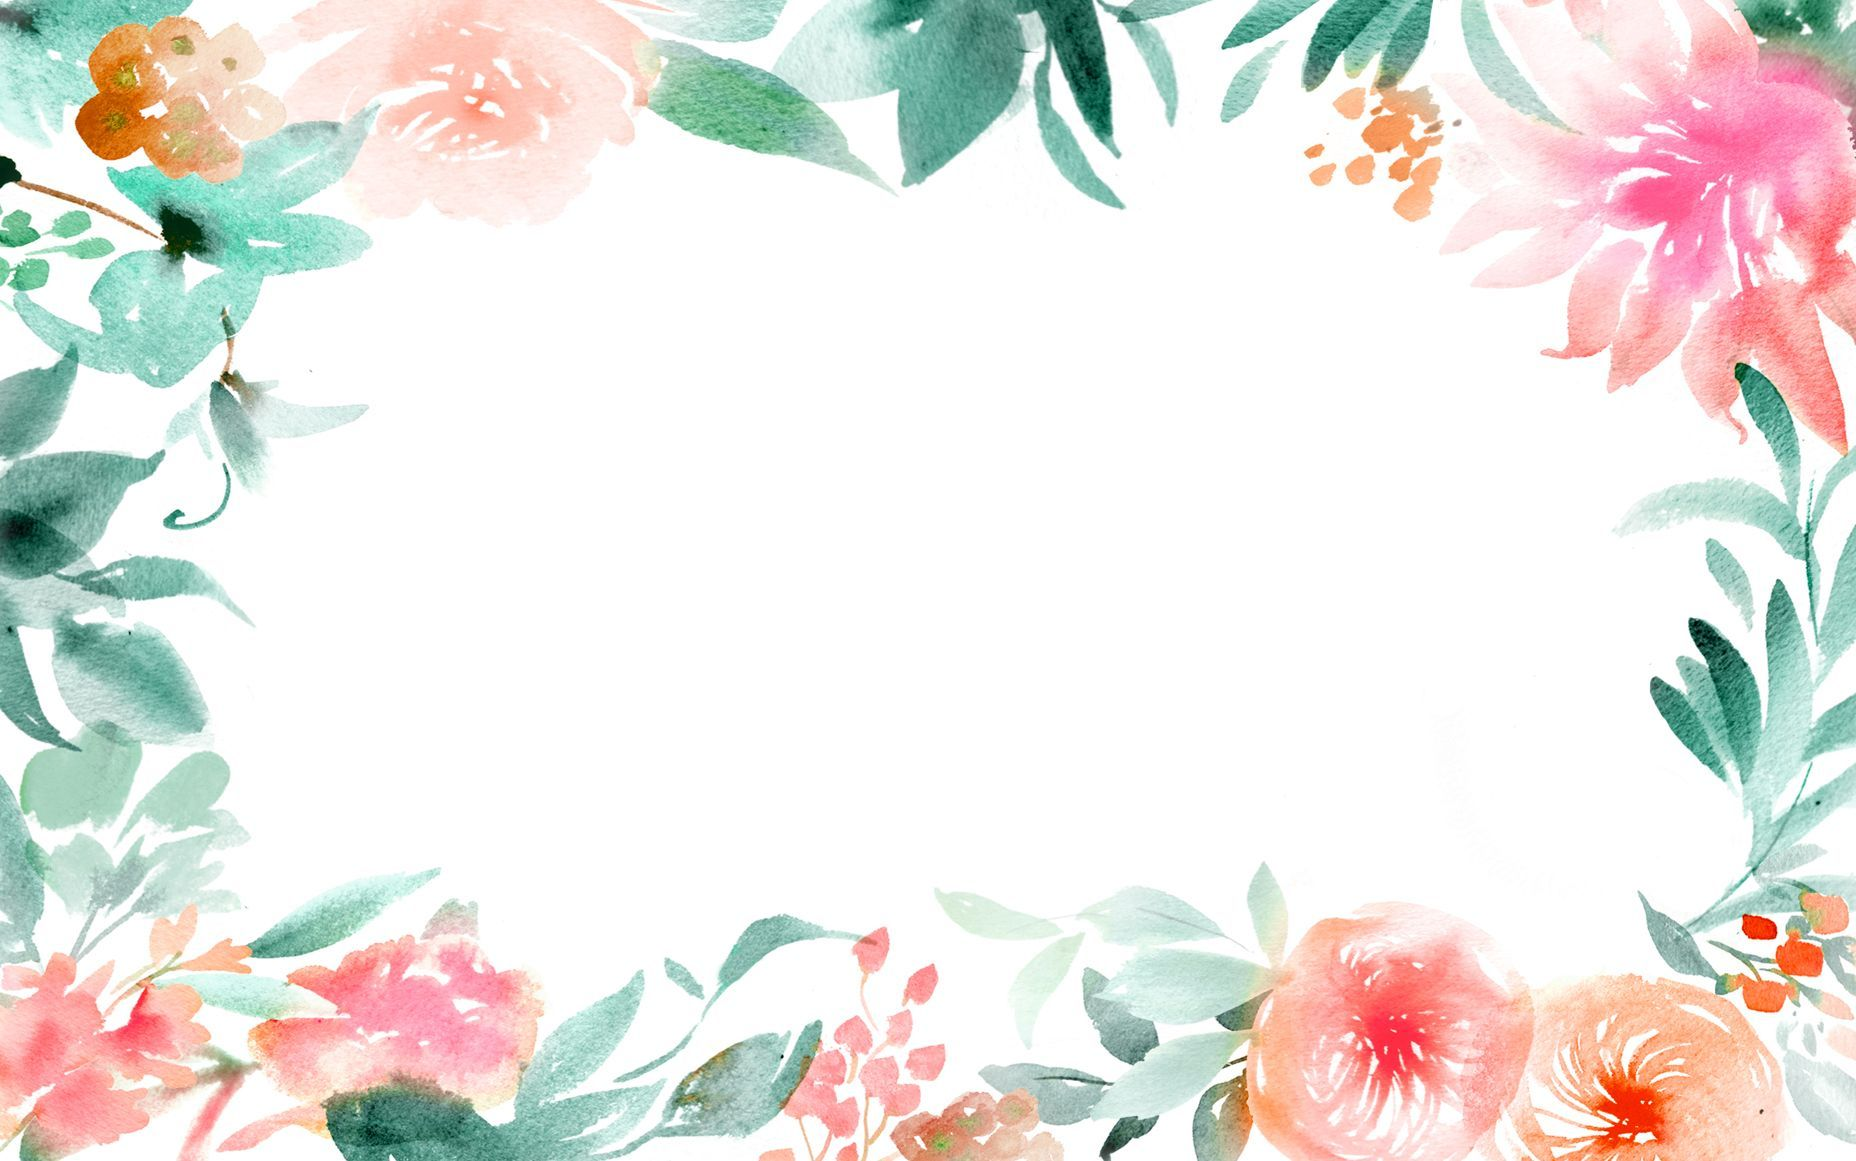 Watercolor floral border clipart jpg royalty free library 45+ Watercolor Flower Border Wallpapers - Download at ... jpg royalty free library